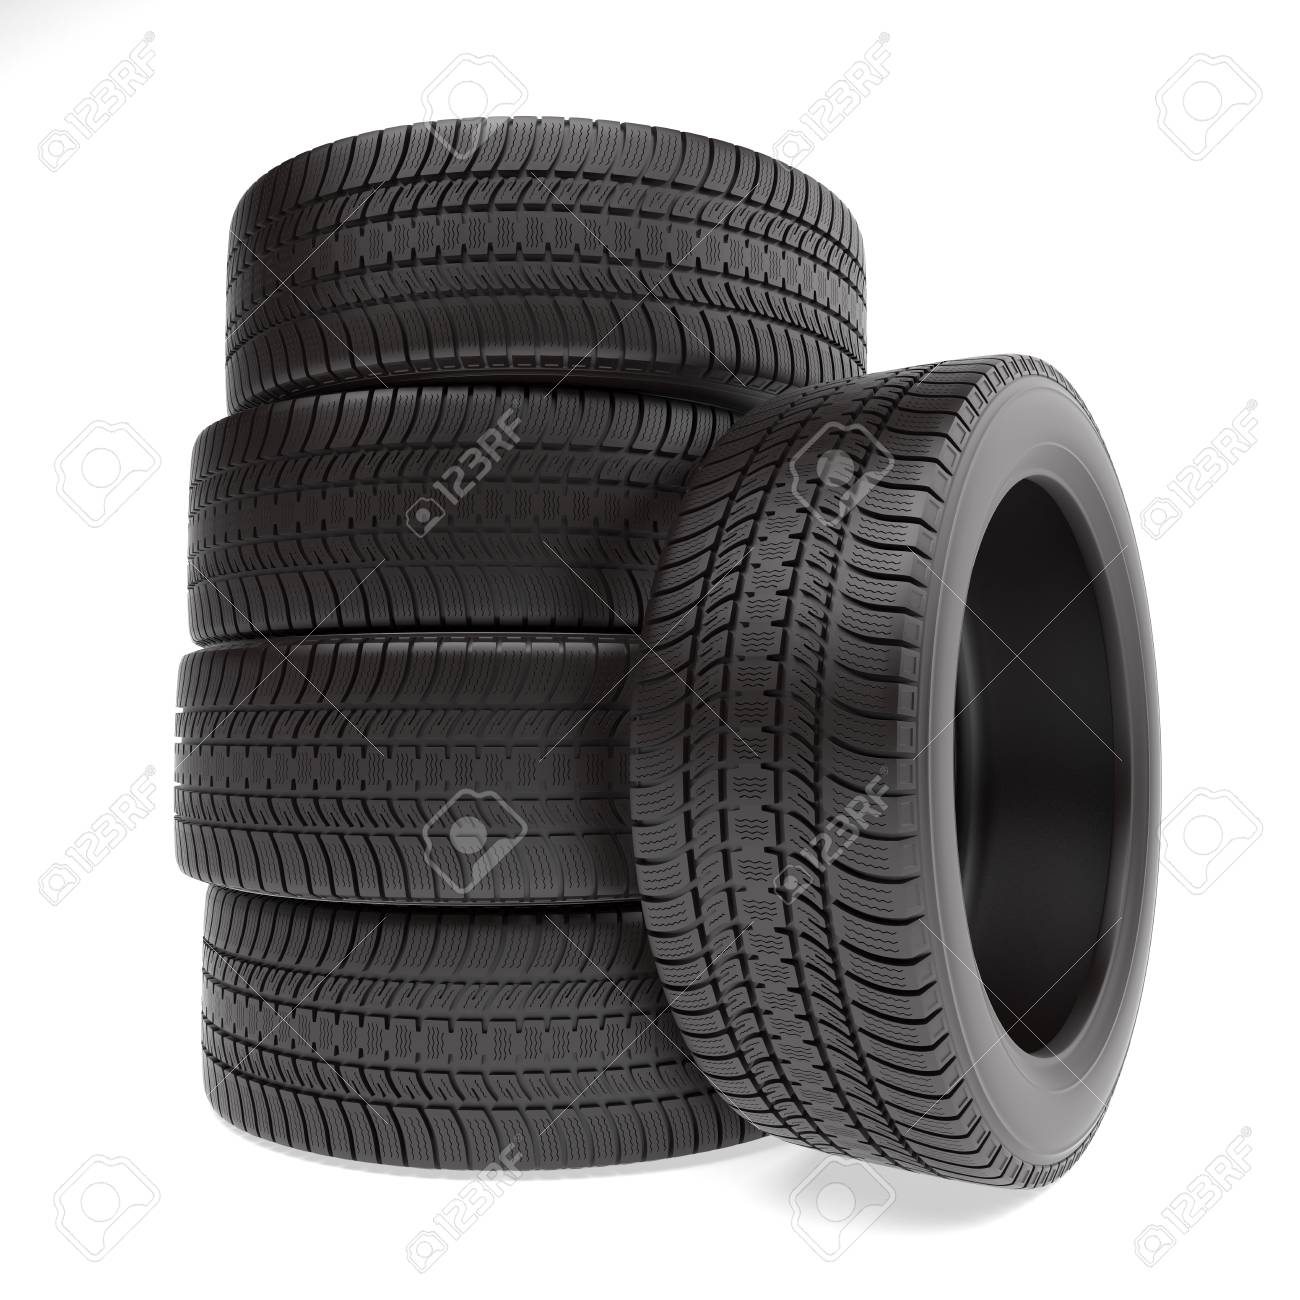 New tires stacked up and isolated on white background - 44929137